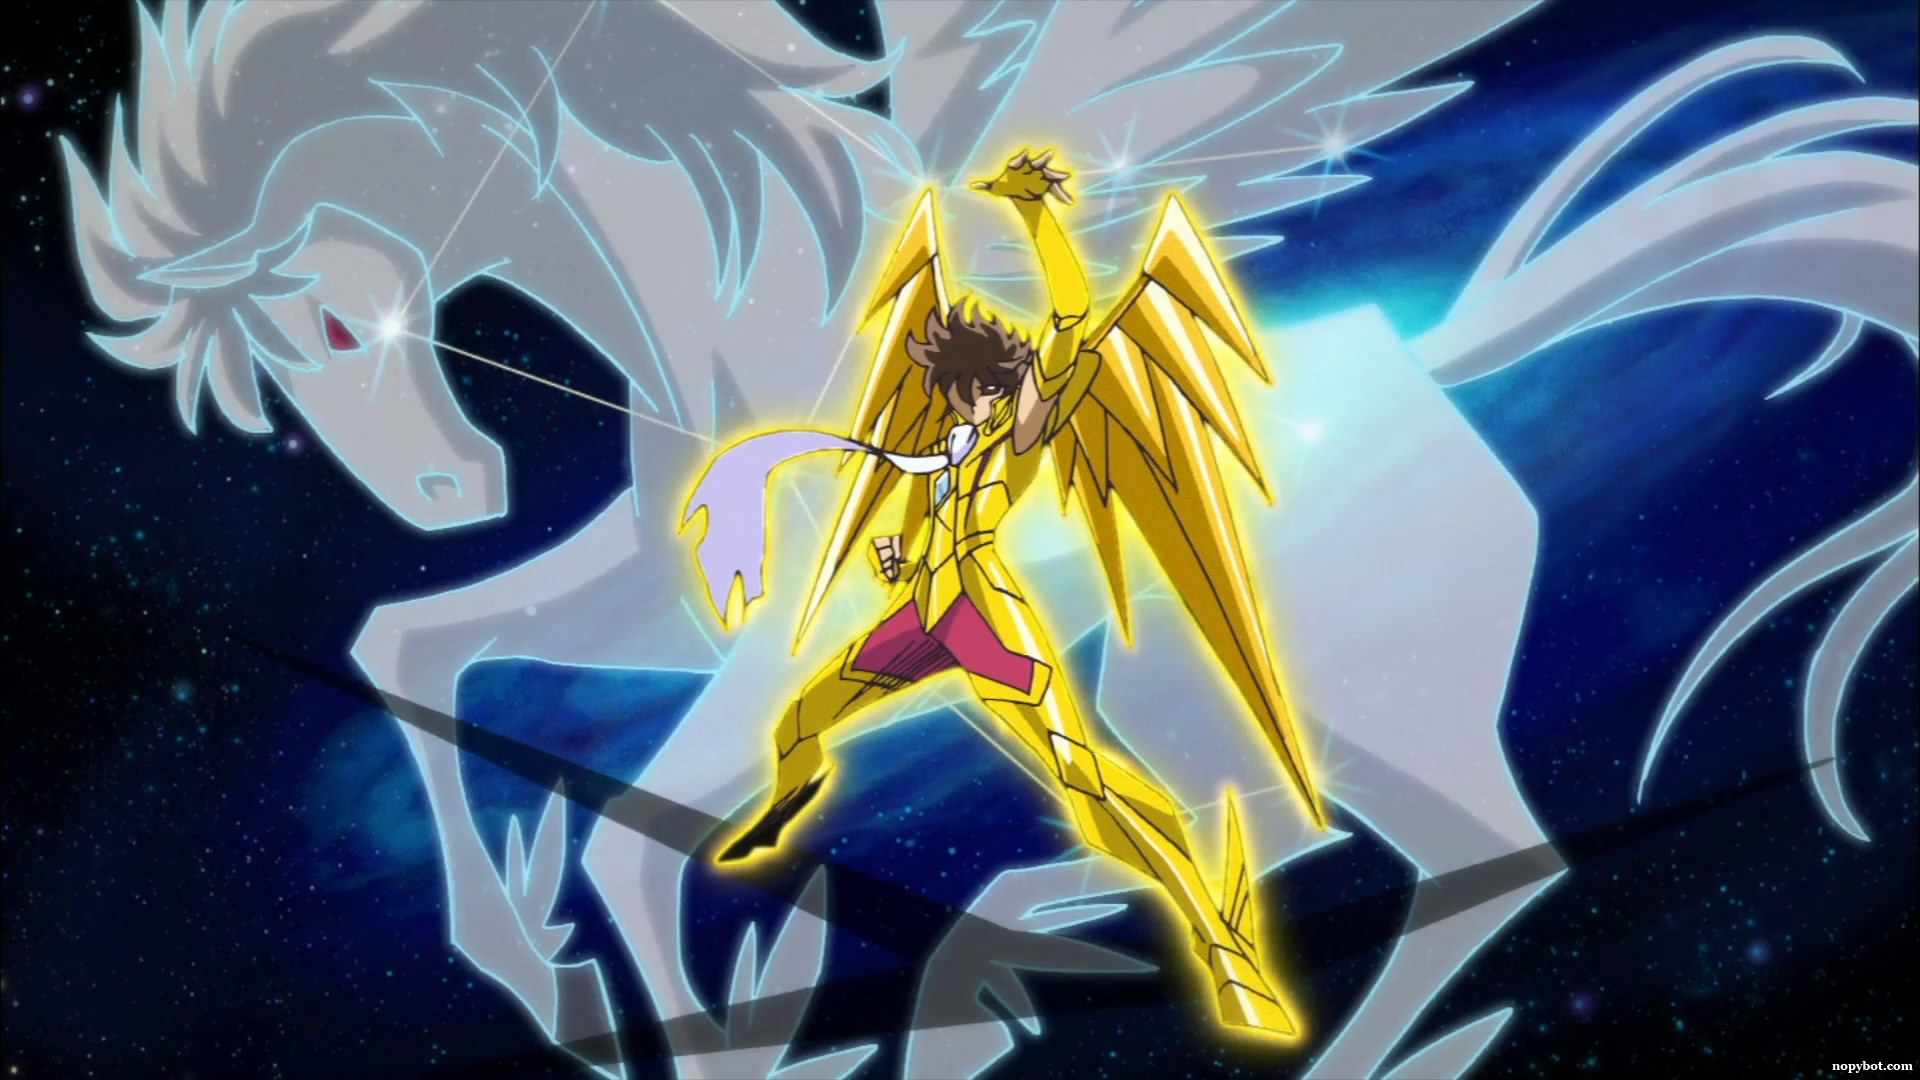 Free Download Saint Seiya The Lost Canvas 1920x1080 For Your